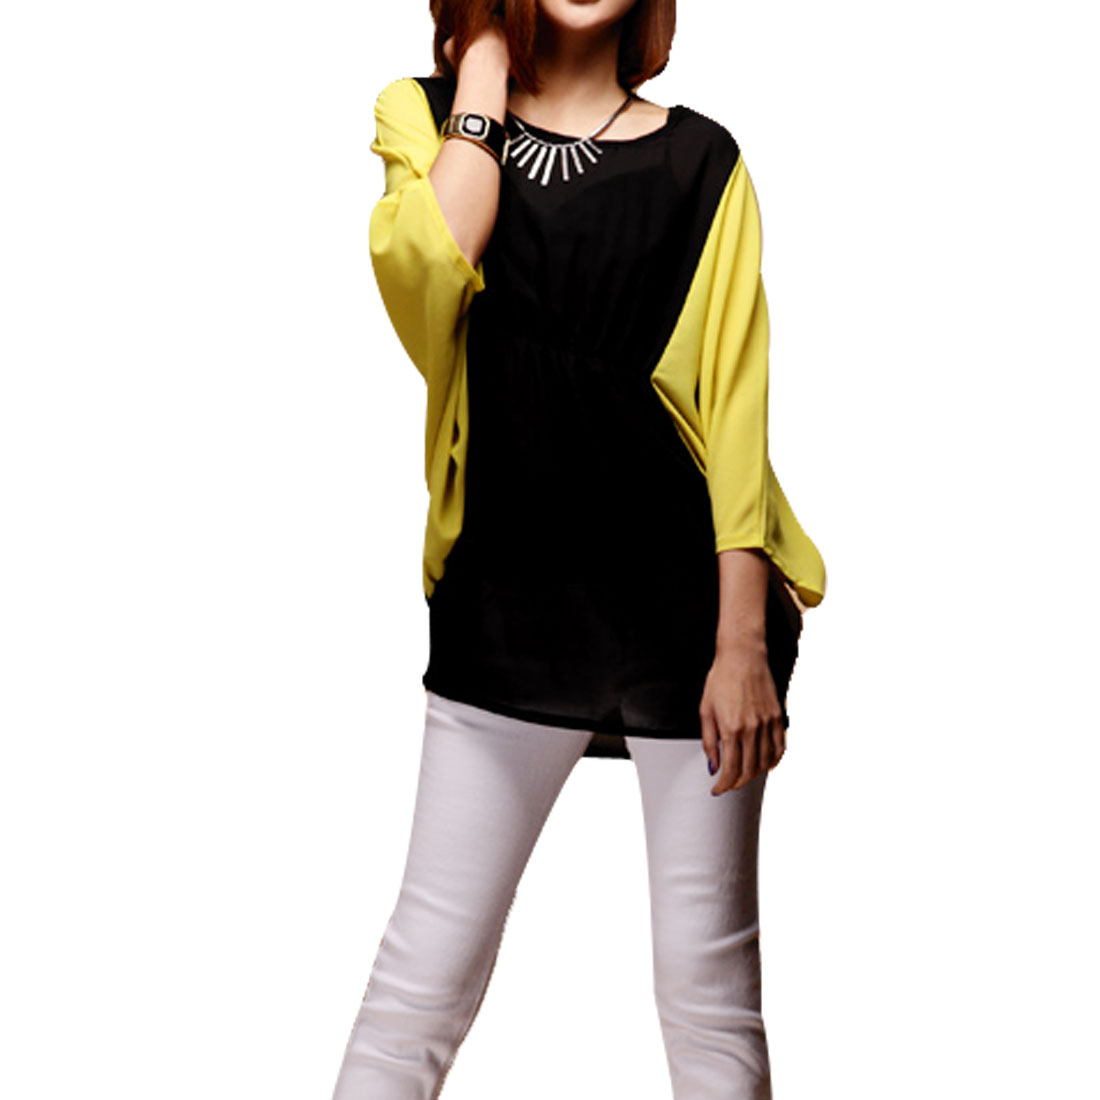 Black Colour Block Scoop Neck Batwing Sleeve Chiffon Blouse Tops for Ladies XS